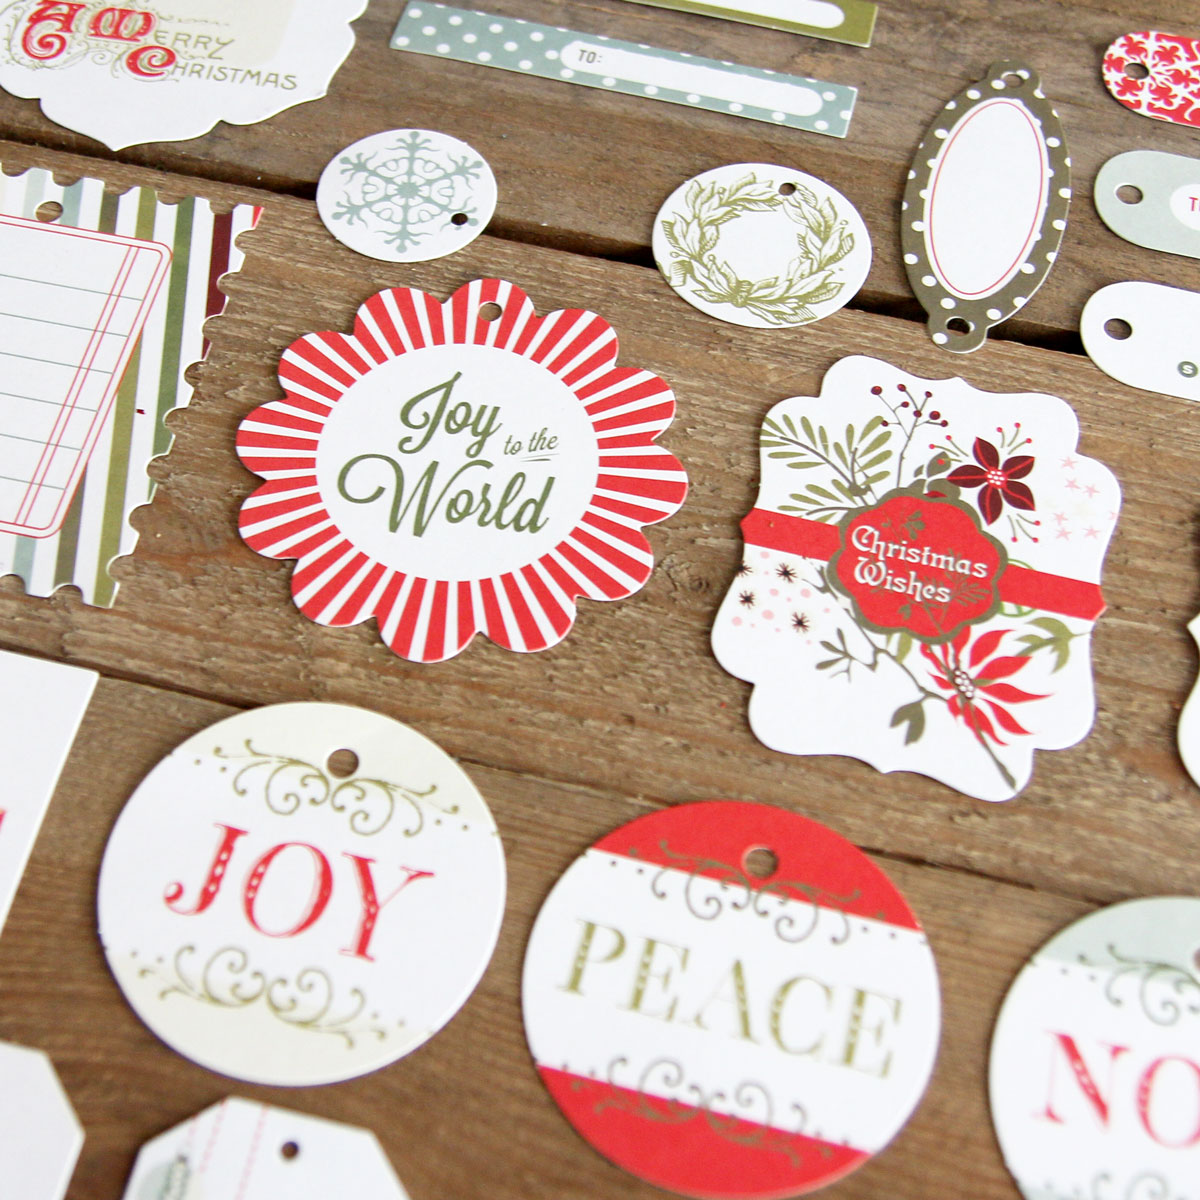 Mr_wonderful_shop_decoracion_navidad_2014_0103